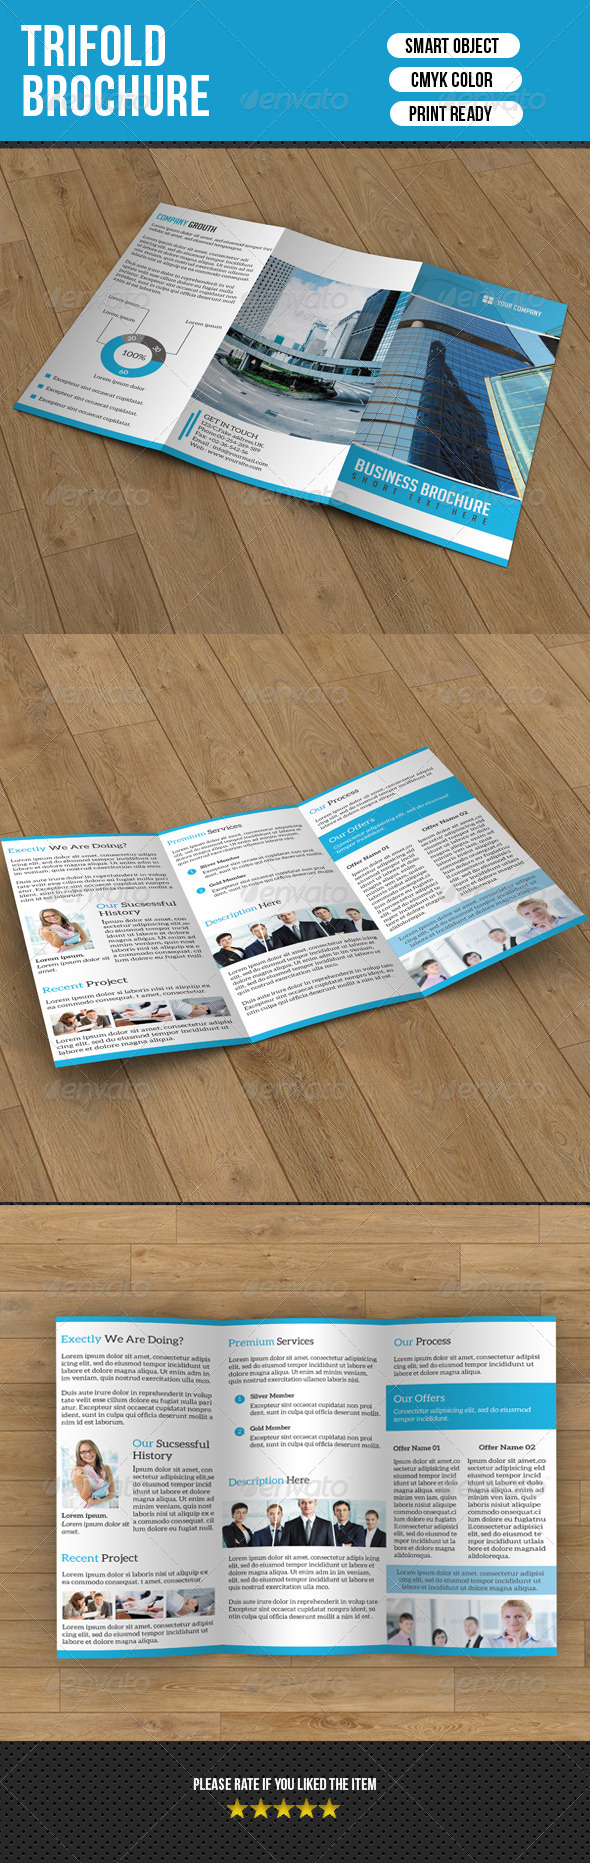 GraphicRiver Trifold Brochure for Business 7053926